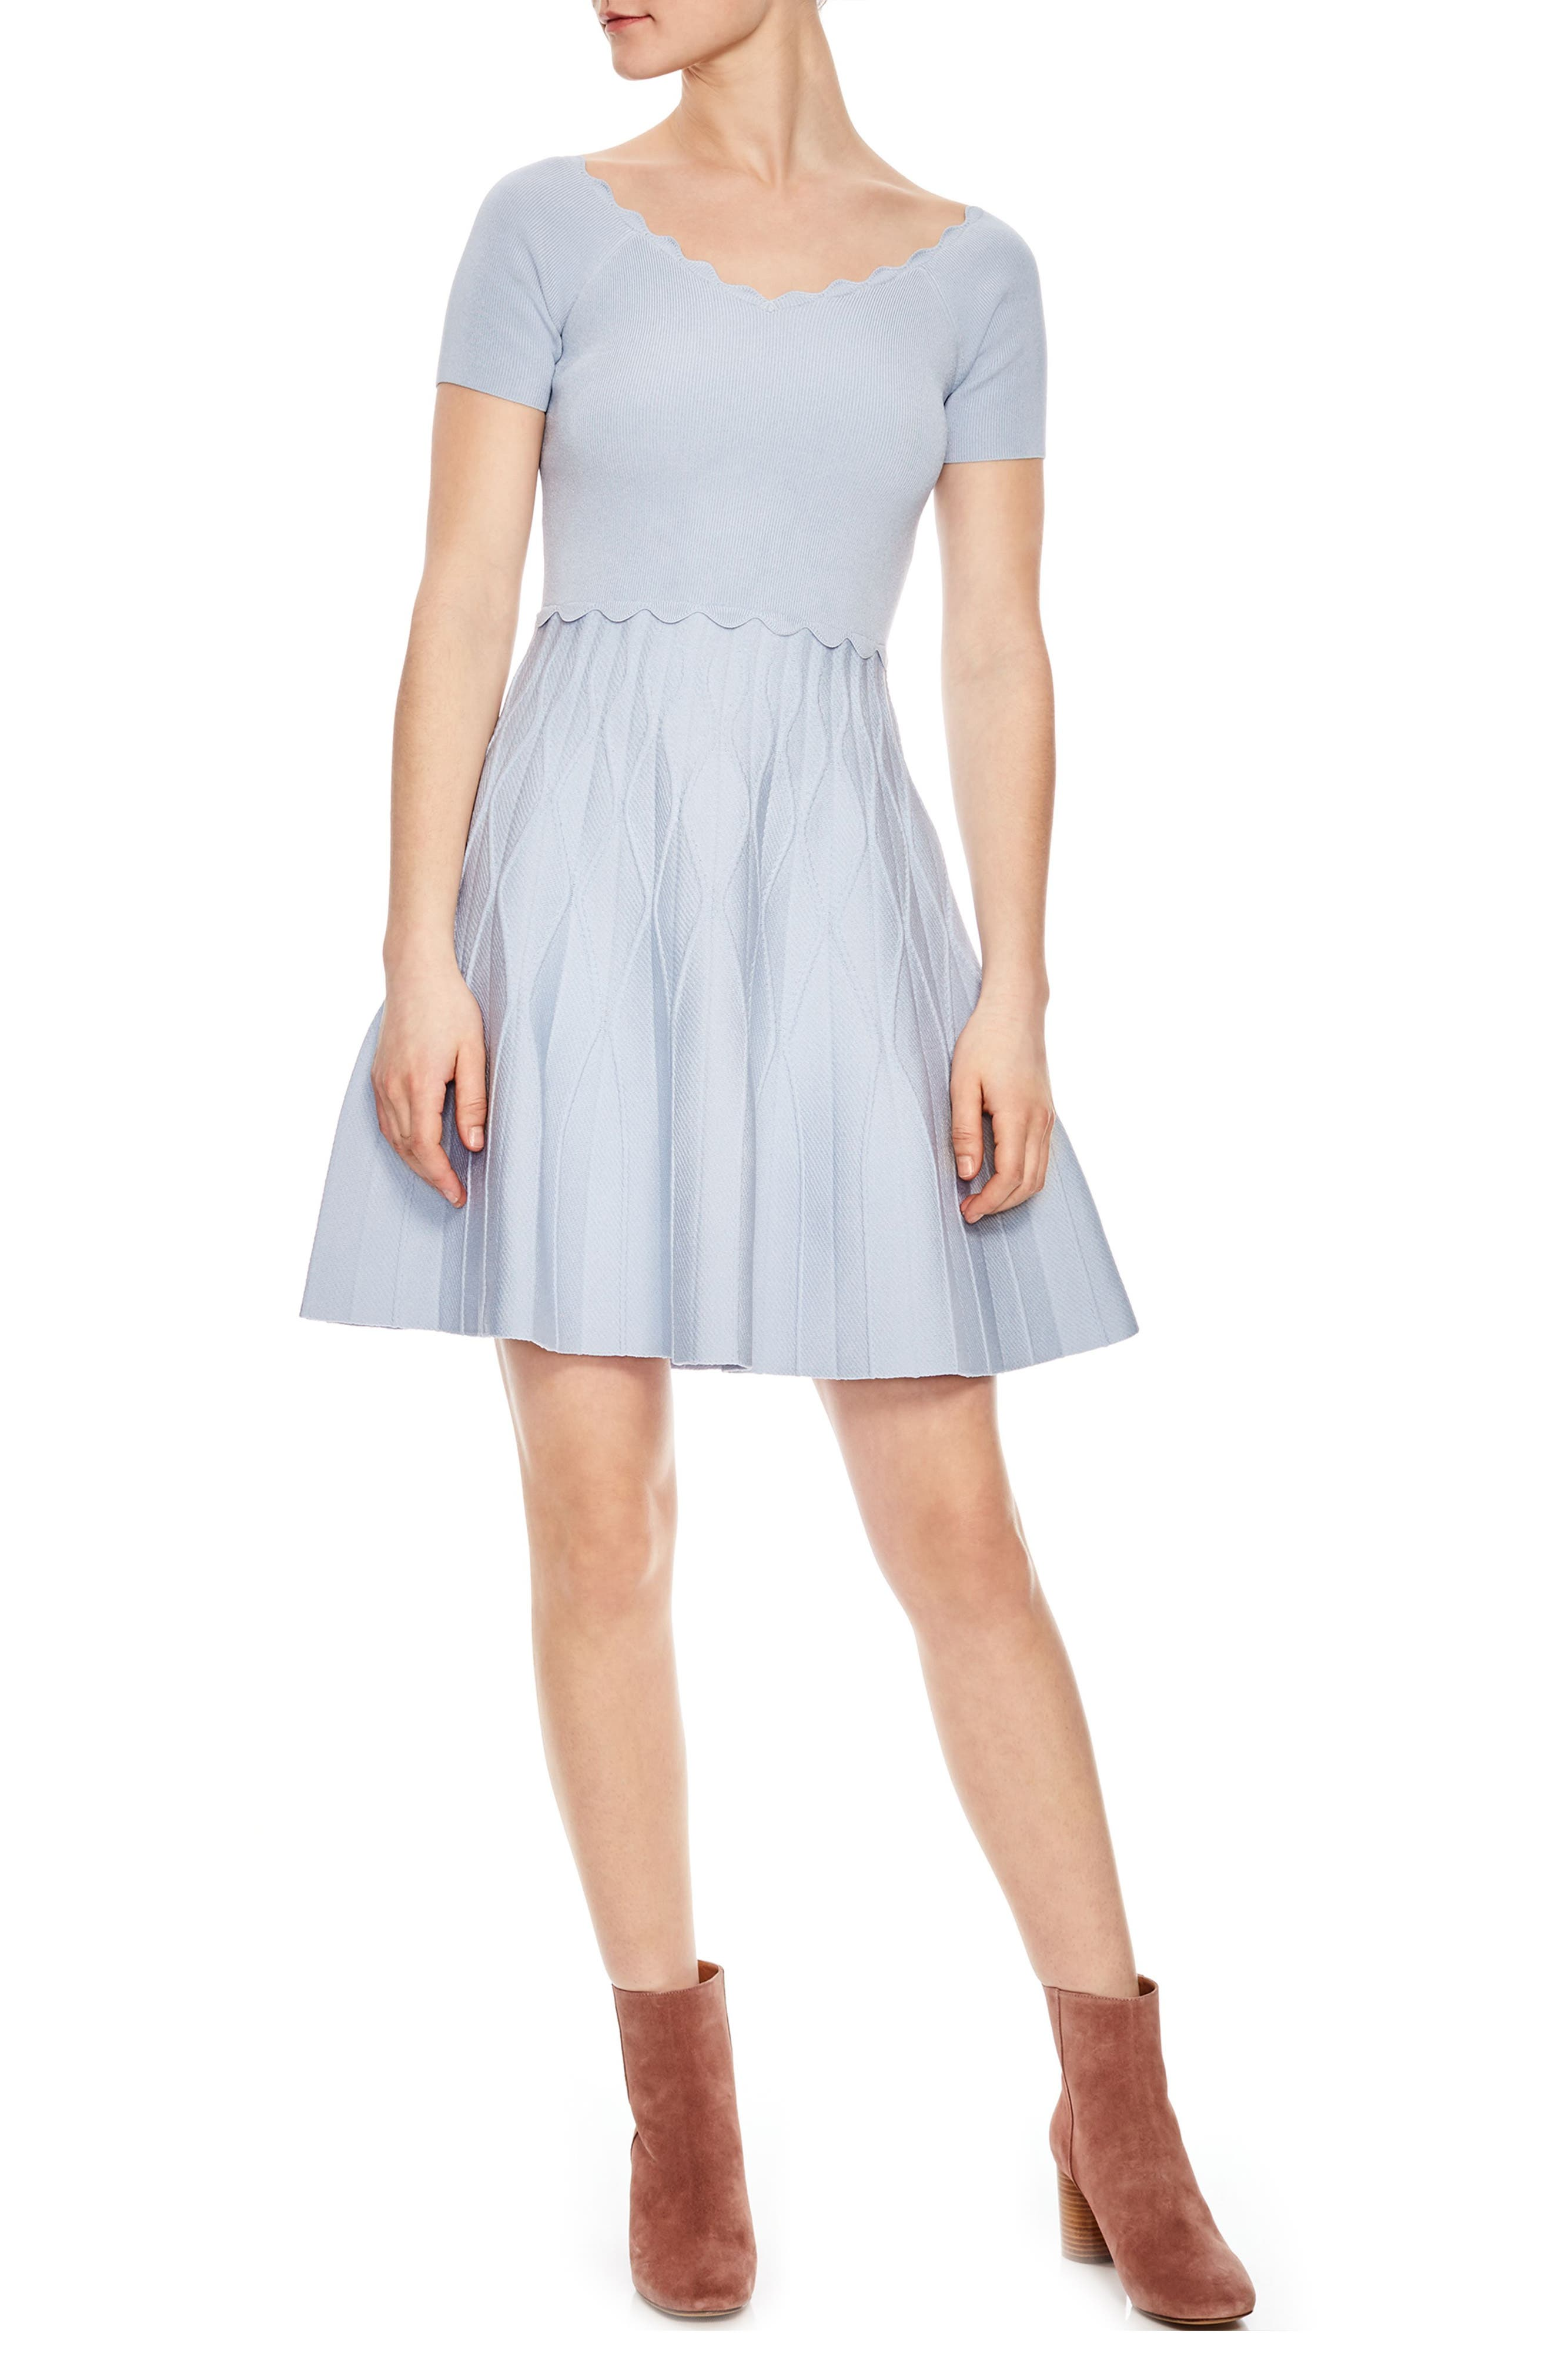 sandro Scallop Detail Fit & Flare Dress